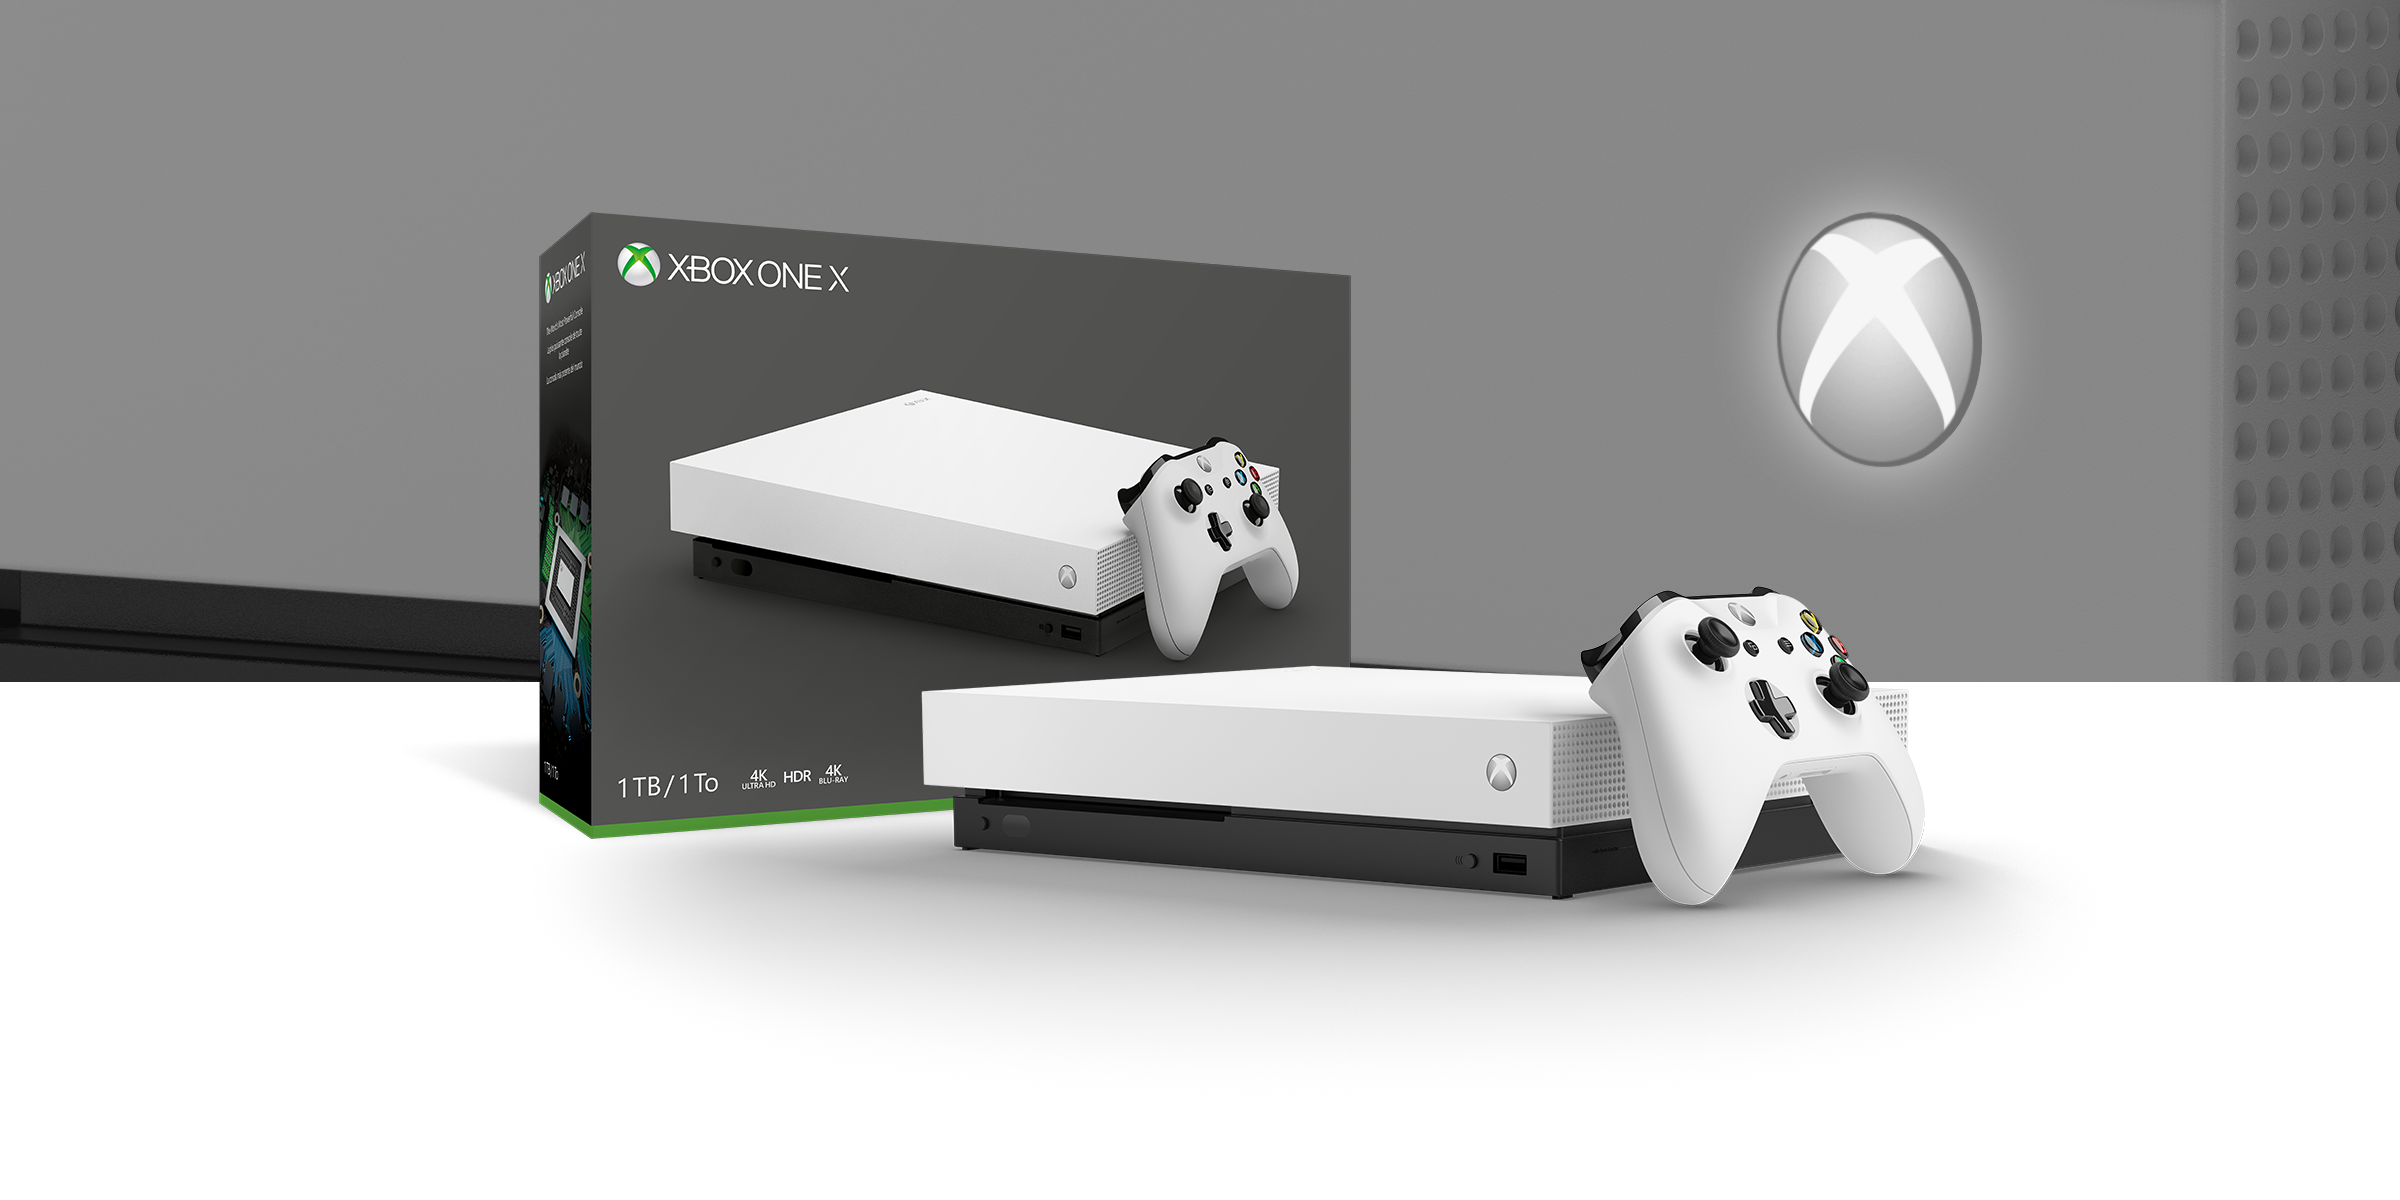 Xbox One X Robot White Special Edition console in front of a hardware bundle box.